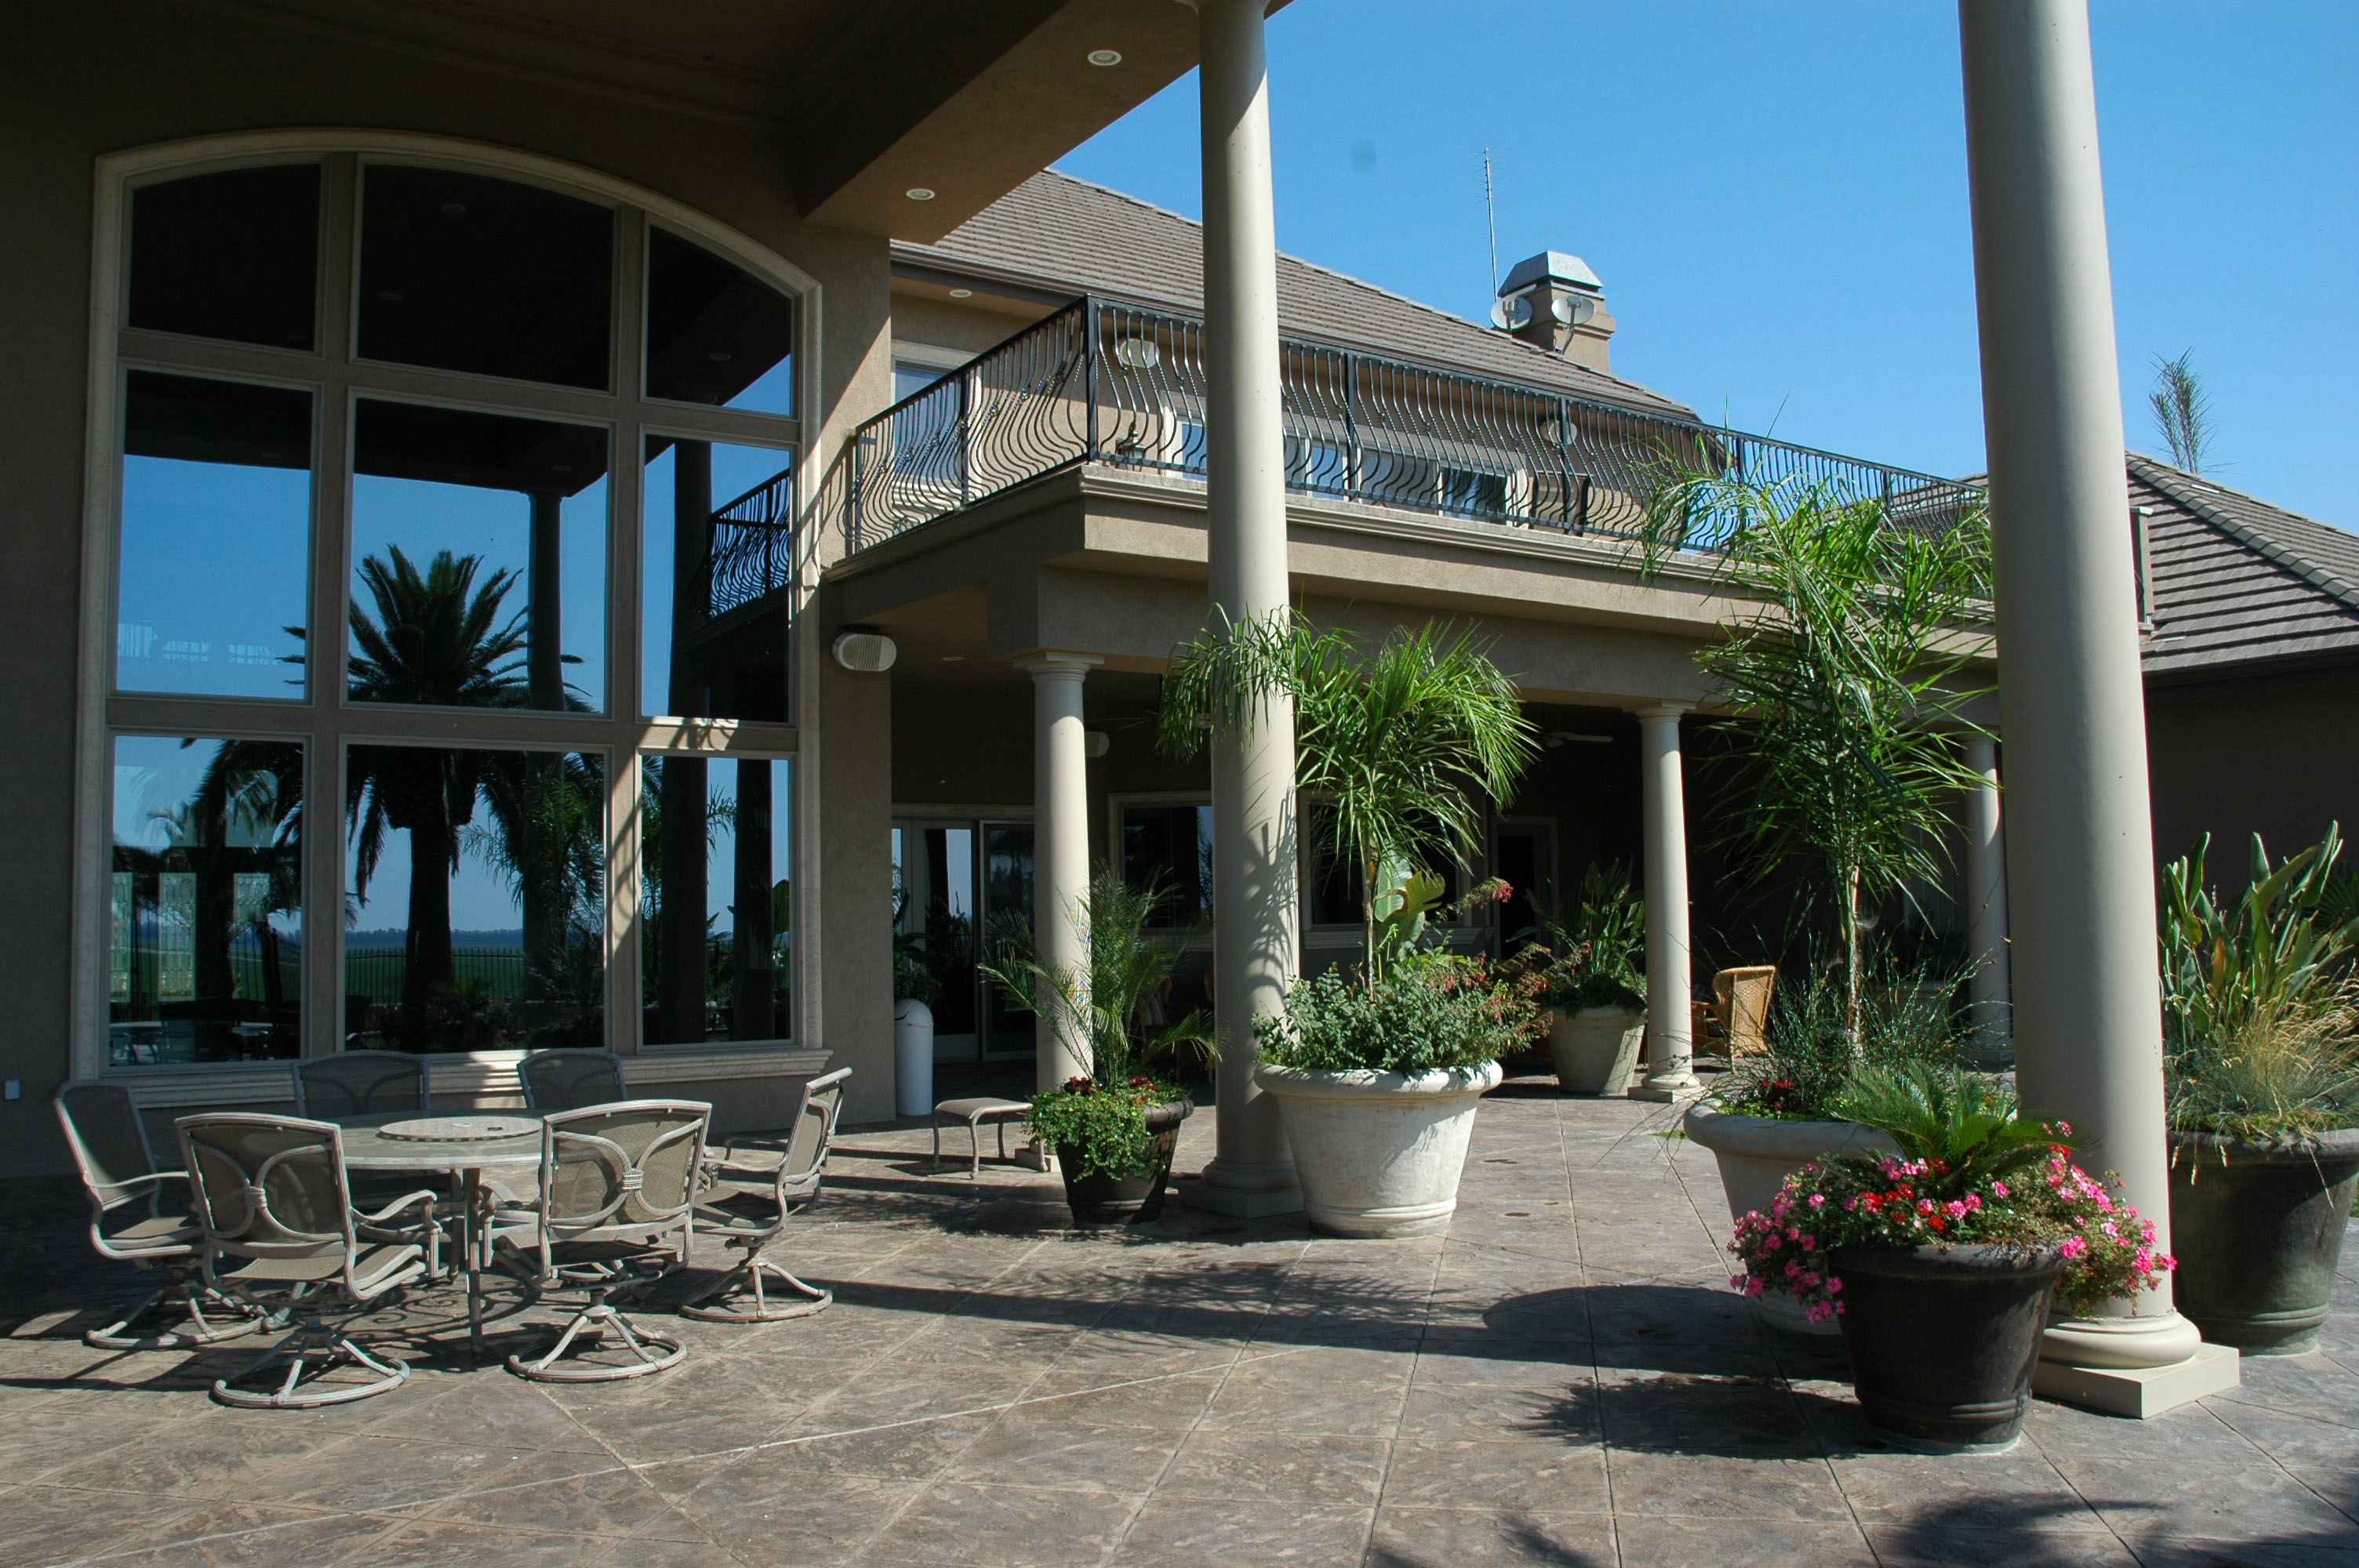 Grand Patio with Planters